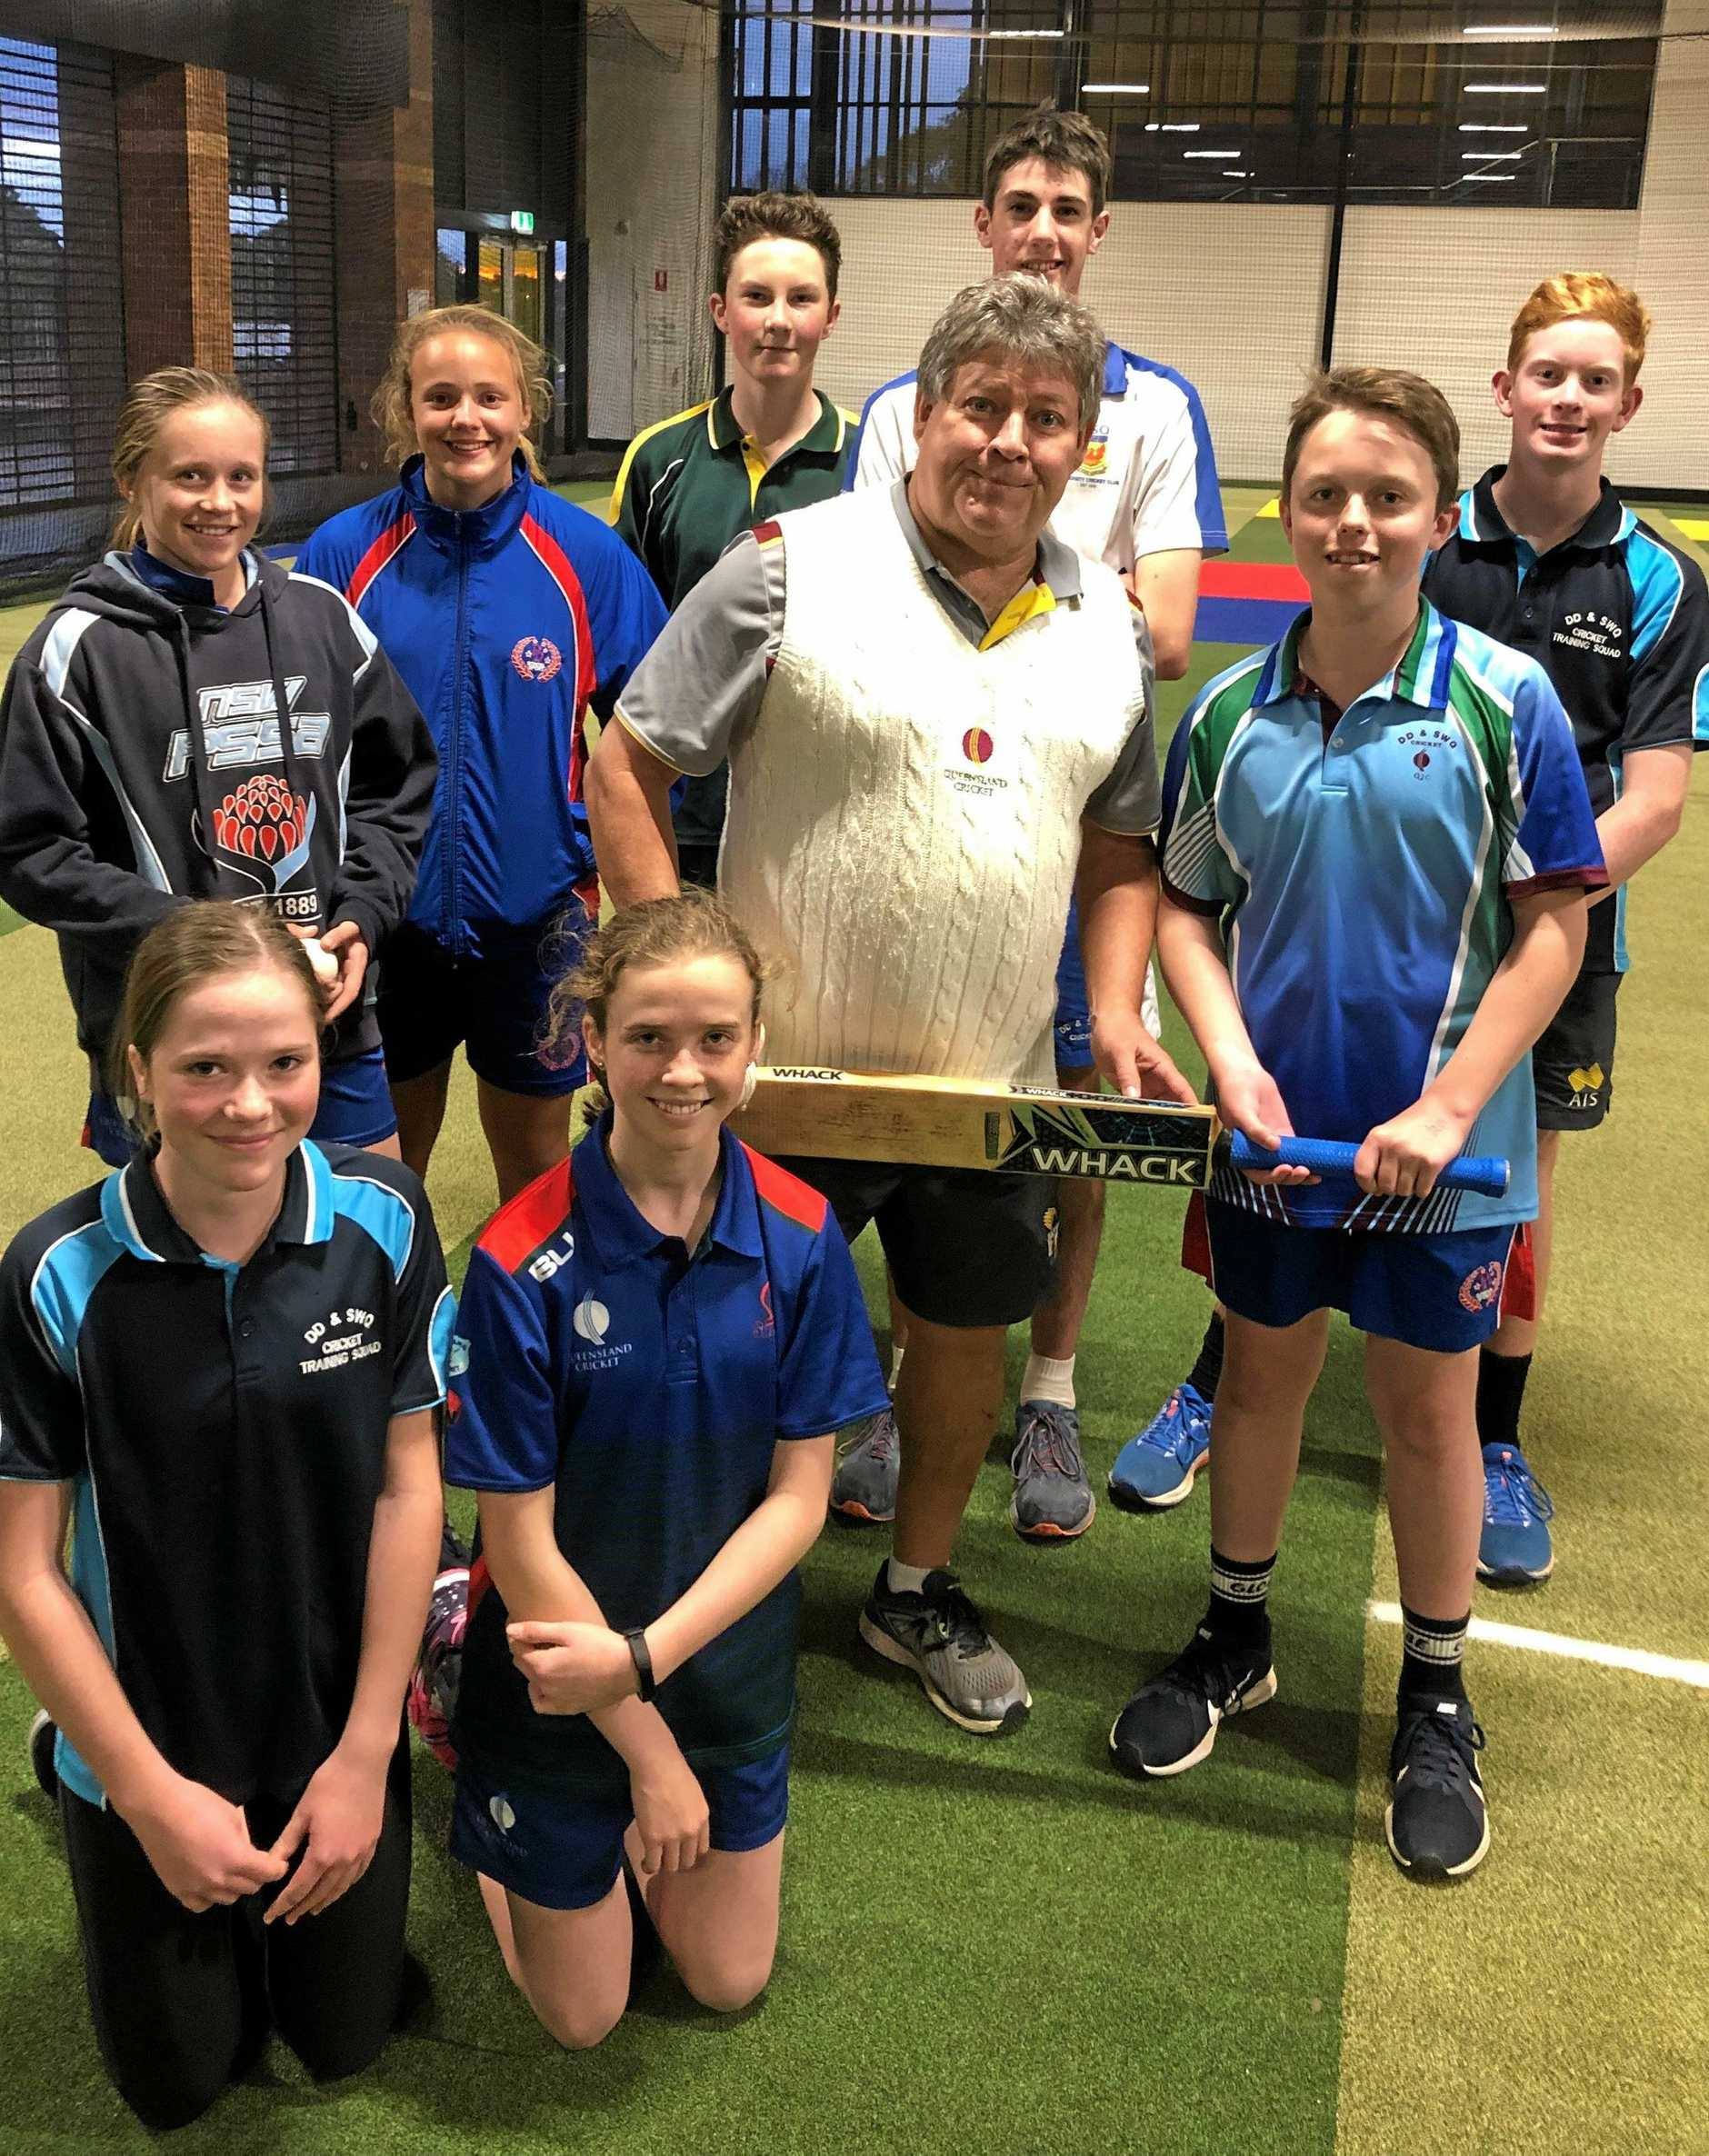 LEARNING FROM THE BEST: Darling Downs members of the Youth Pathways Academy 2019/20 are (back, from left) Layla Proctor, Felicity Koch, Aidan White, Joseph Fry, Callum Galvin and (Mmddle, from left) coach Andy Richards and Matthew Spanner. and (front, from left) Jasmine Lewis and Bree Craven.